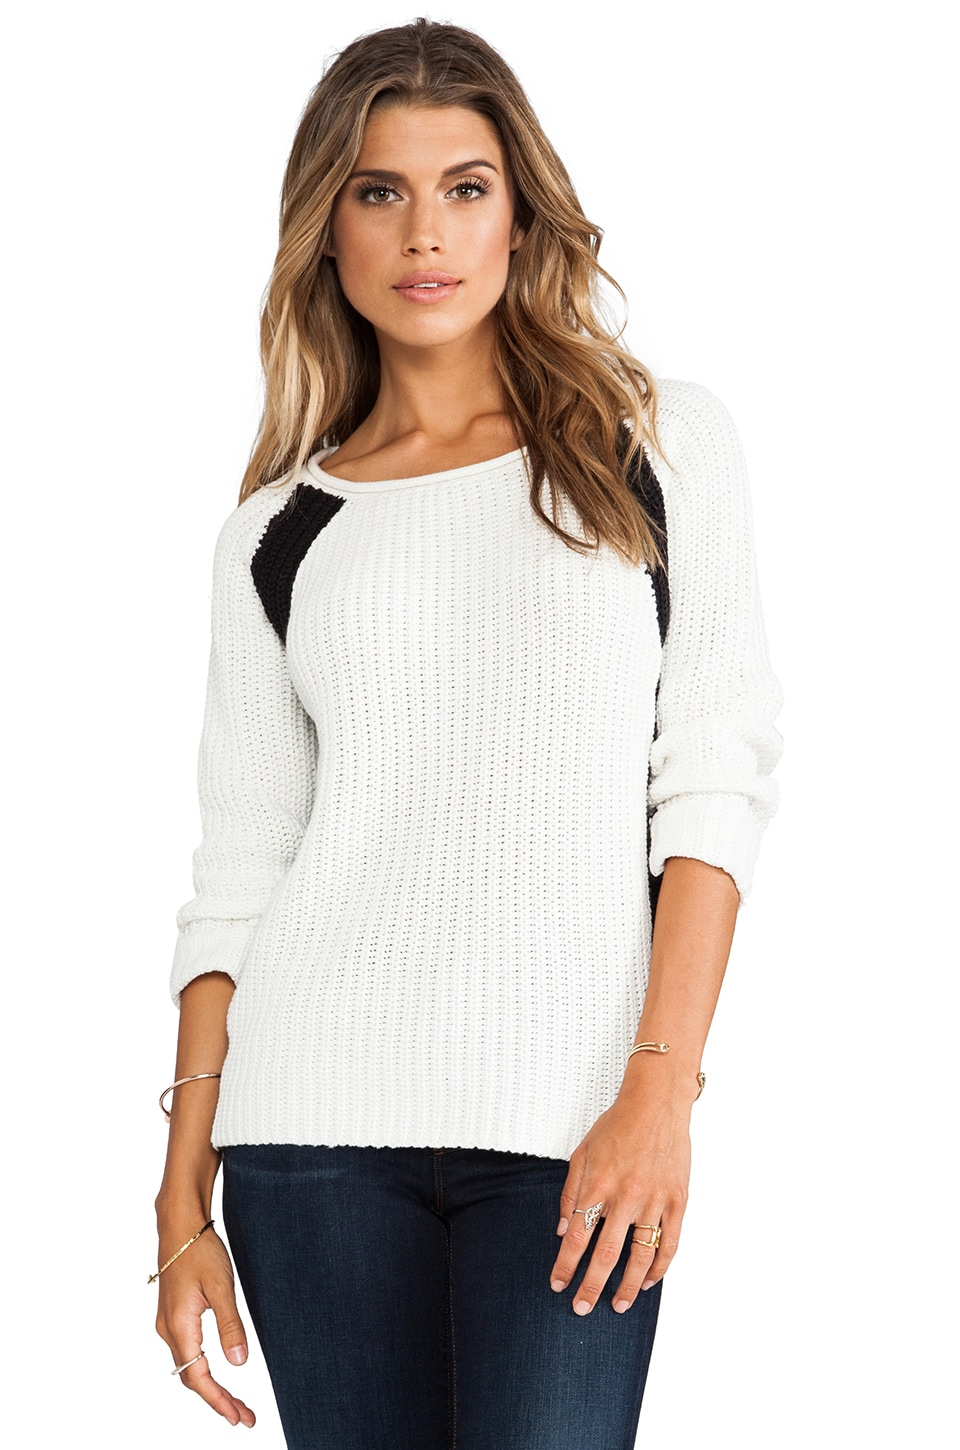 TOWNSEN Arden Sweater in Cream